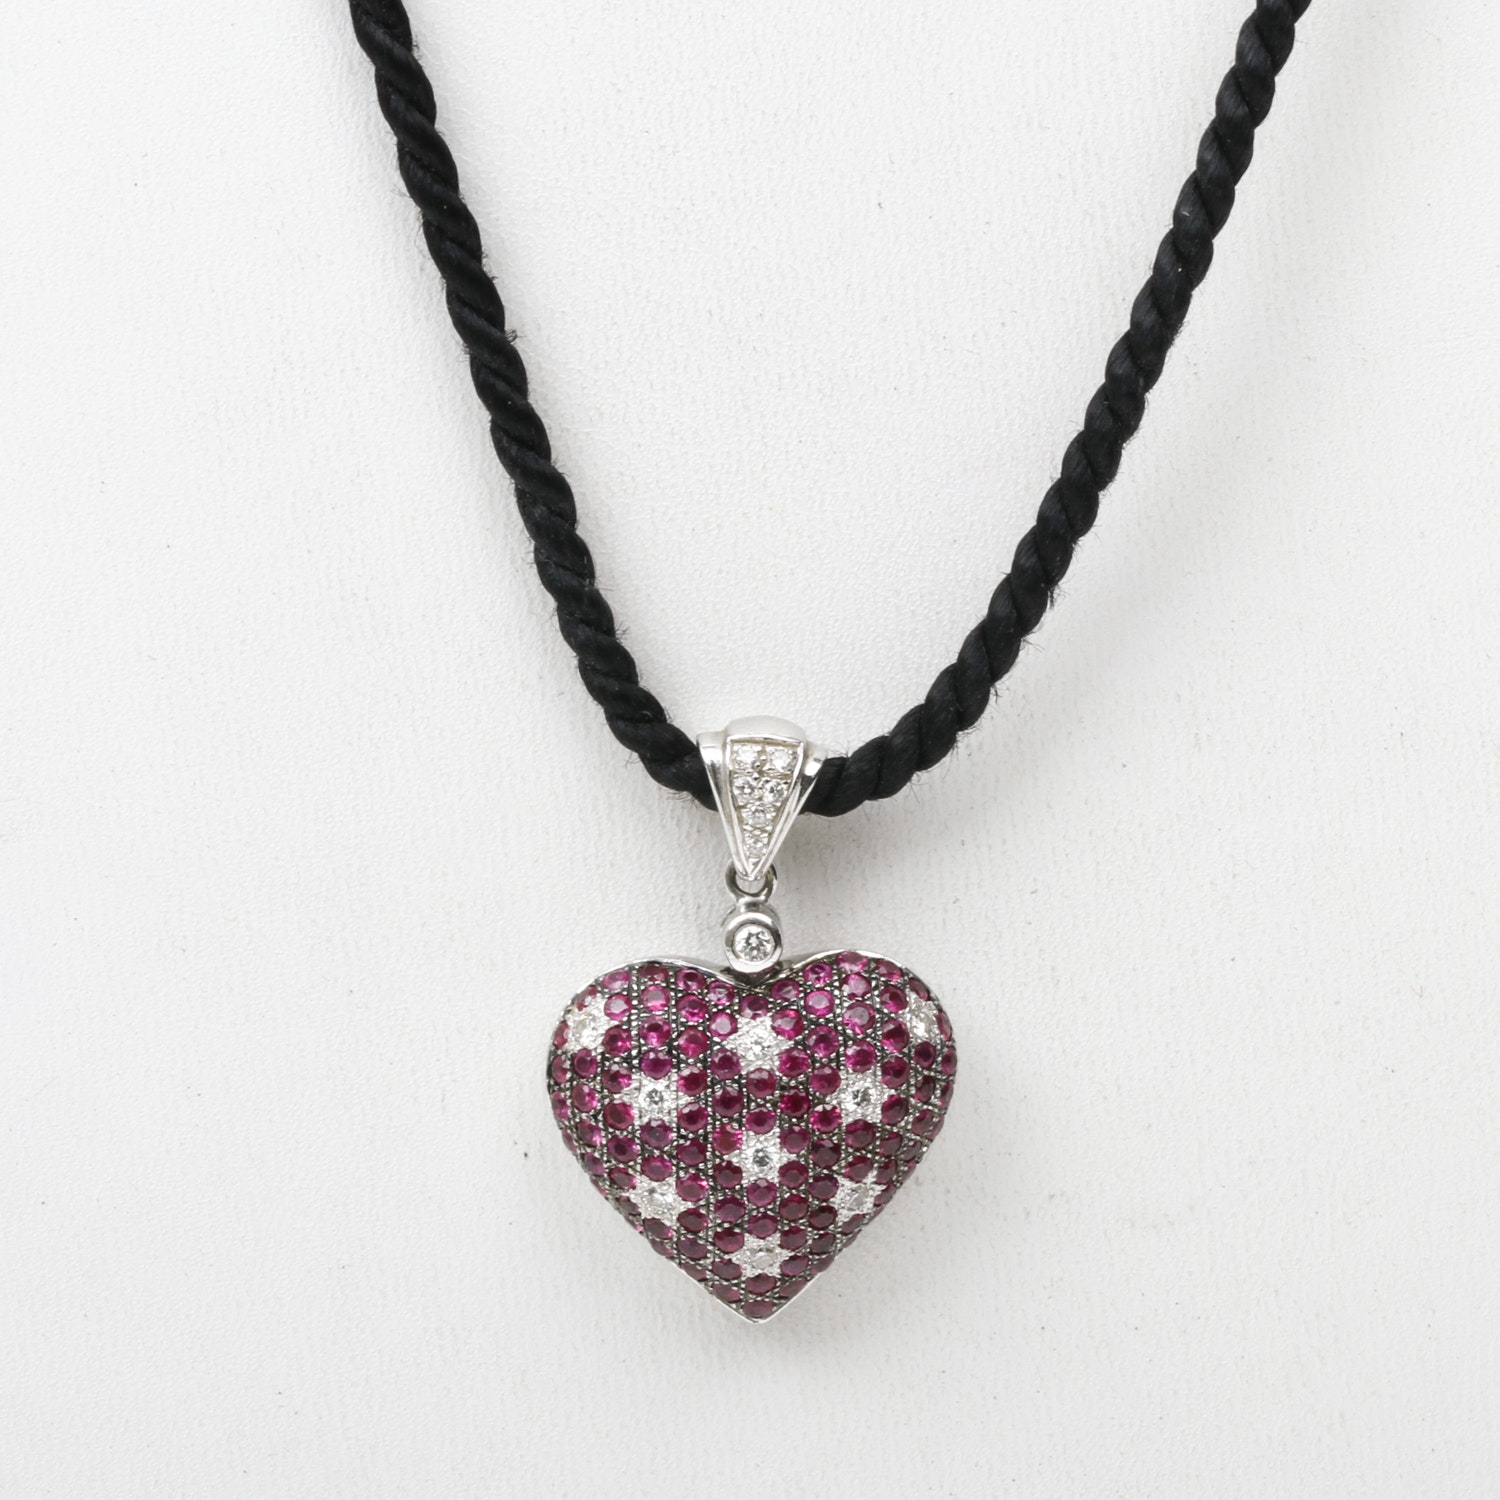 Le Vian 14K White Gold, Ruby, and Diamond Heart Pendant Necklace